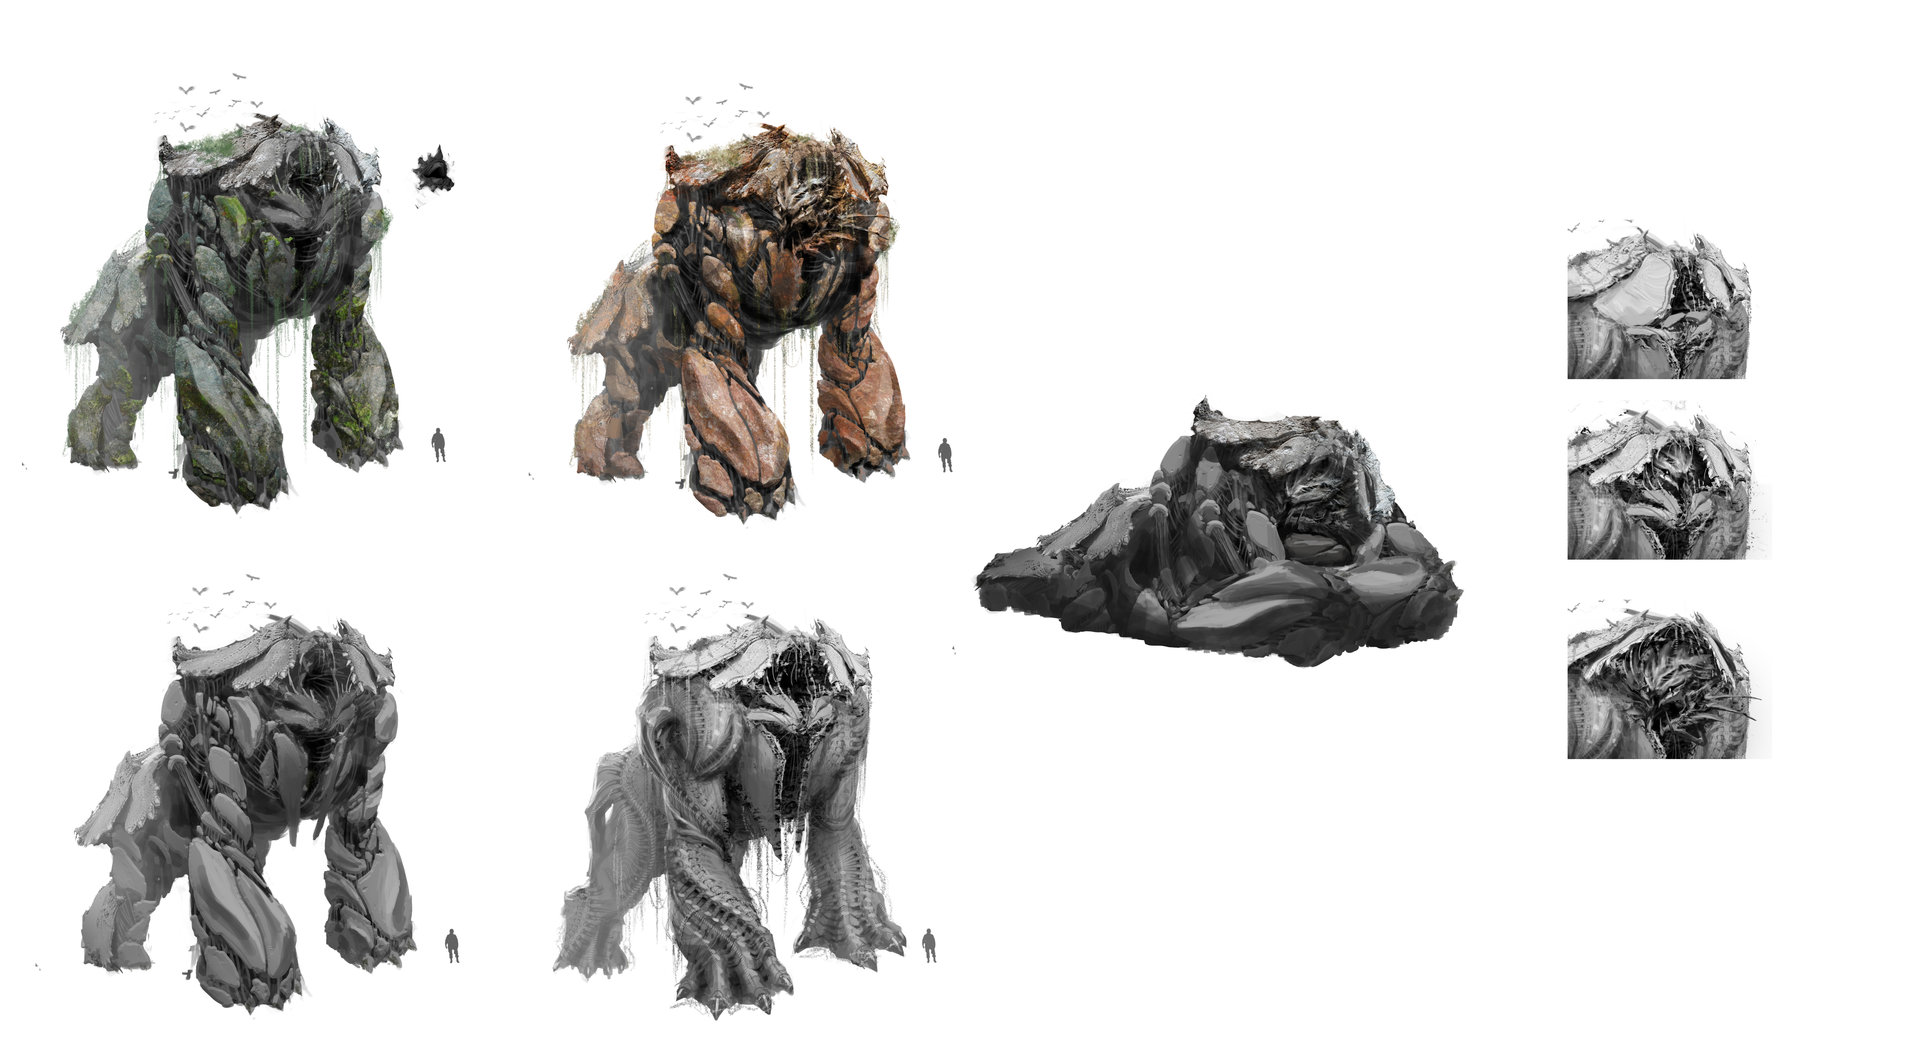 Tu bui mammoth sketches